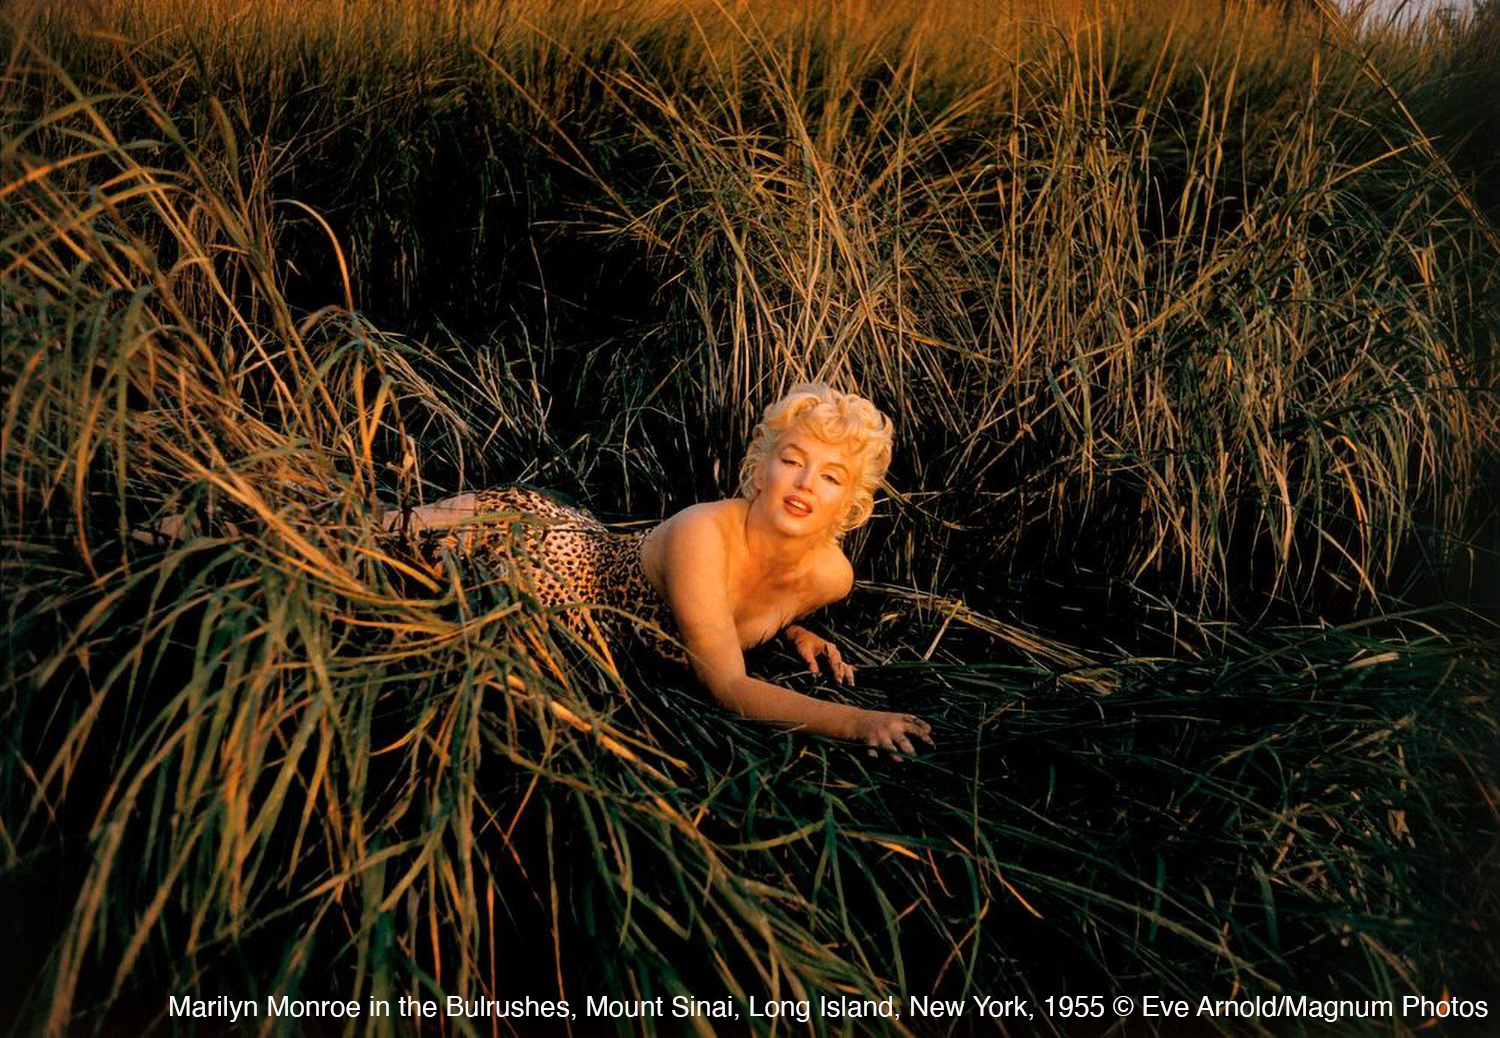 Photo by Eve Arnold of Marilyn Monroe